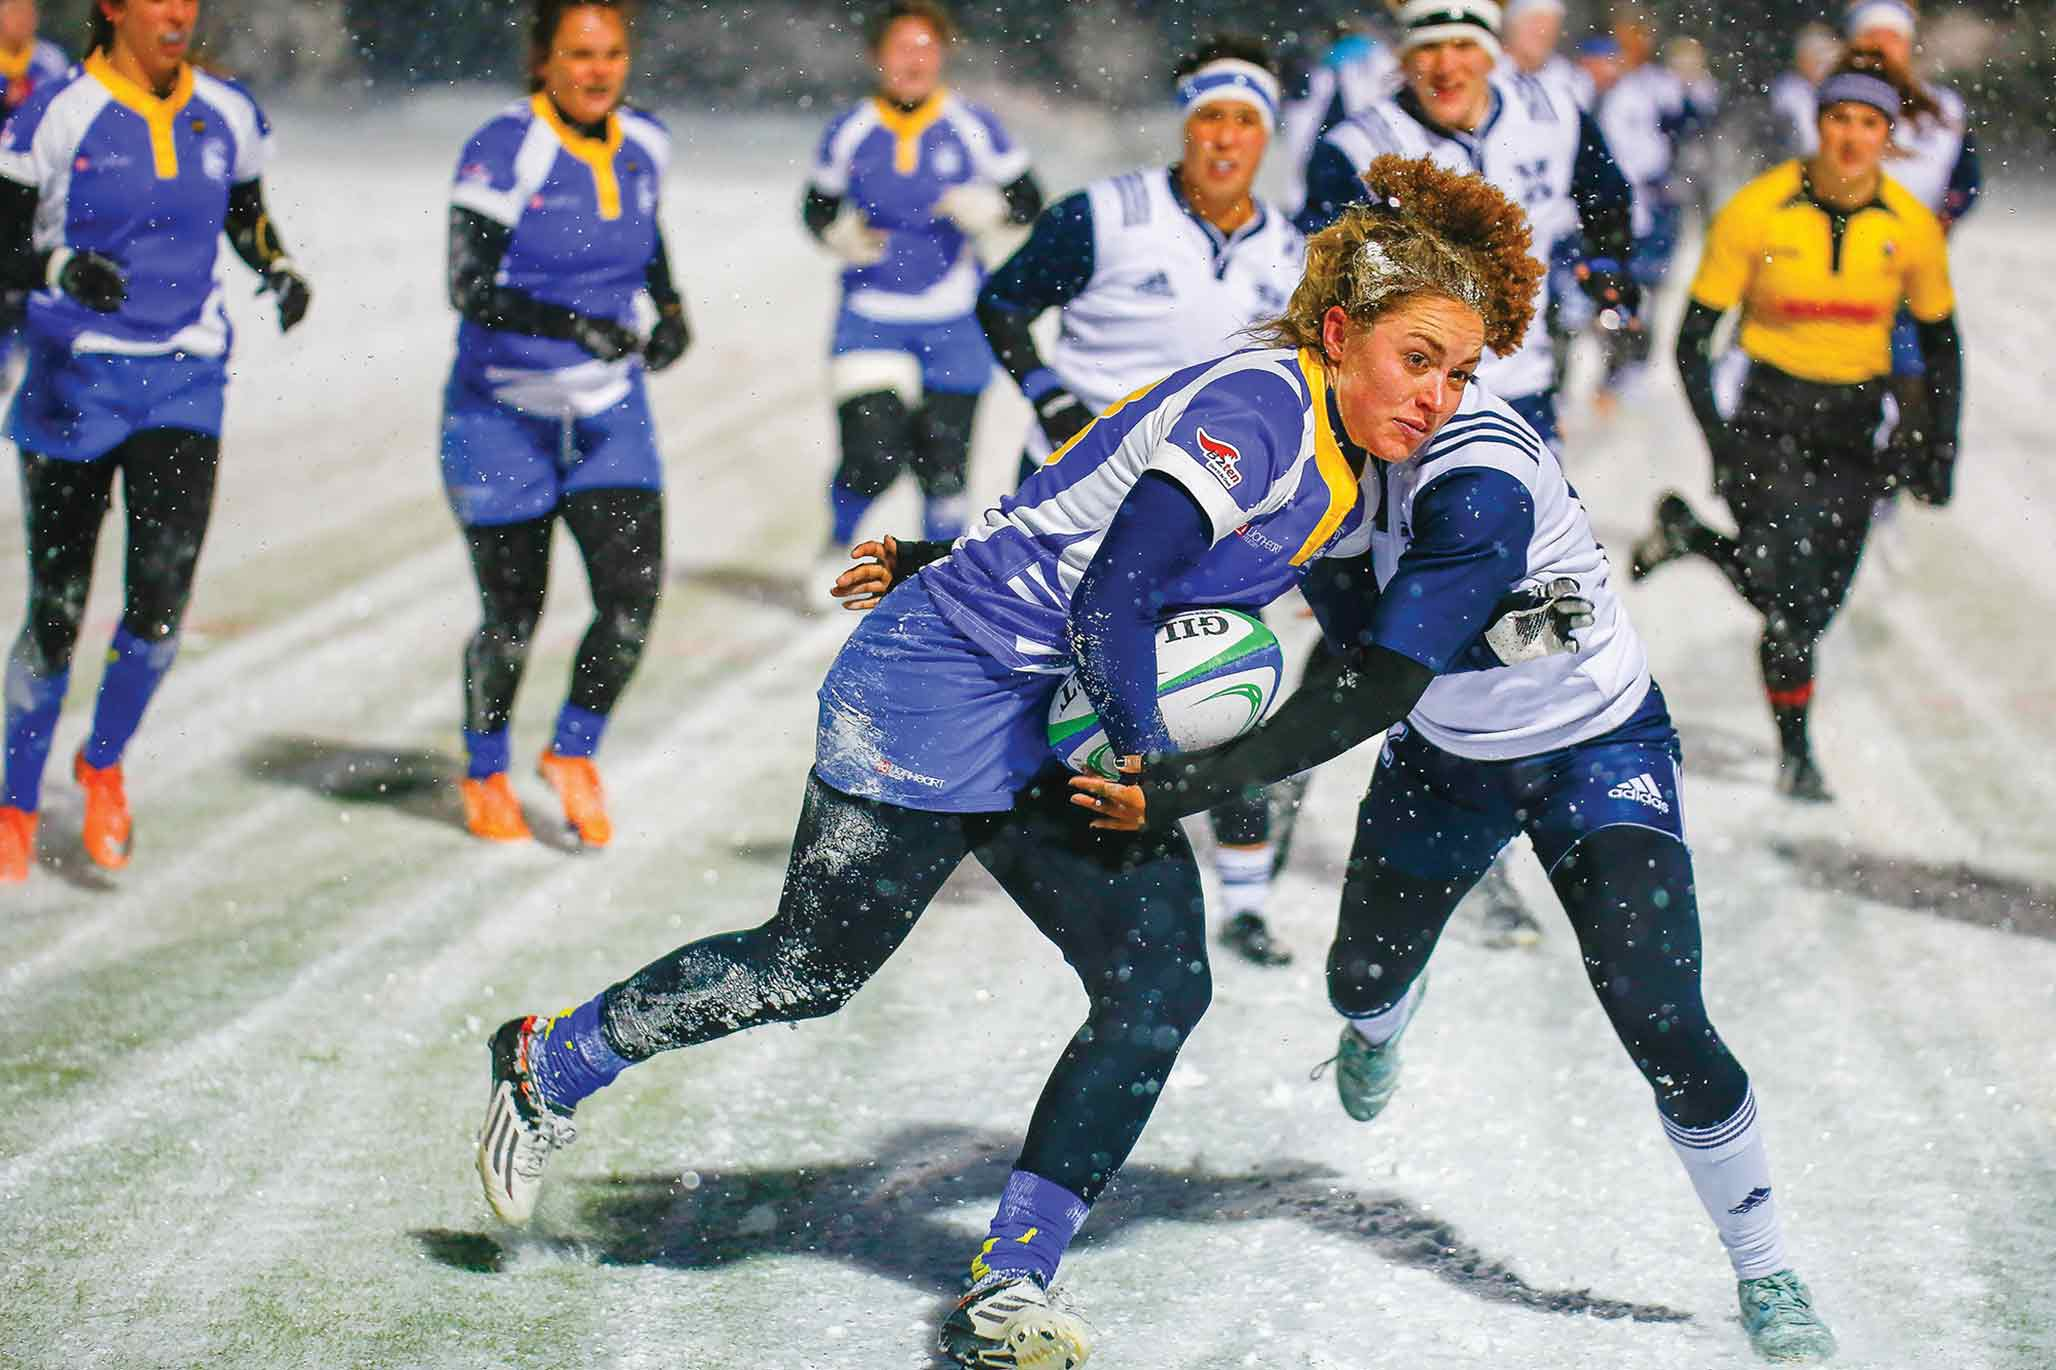 Rugby players in the snow